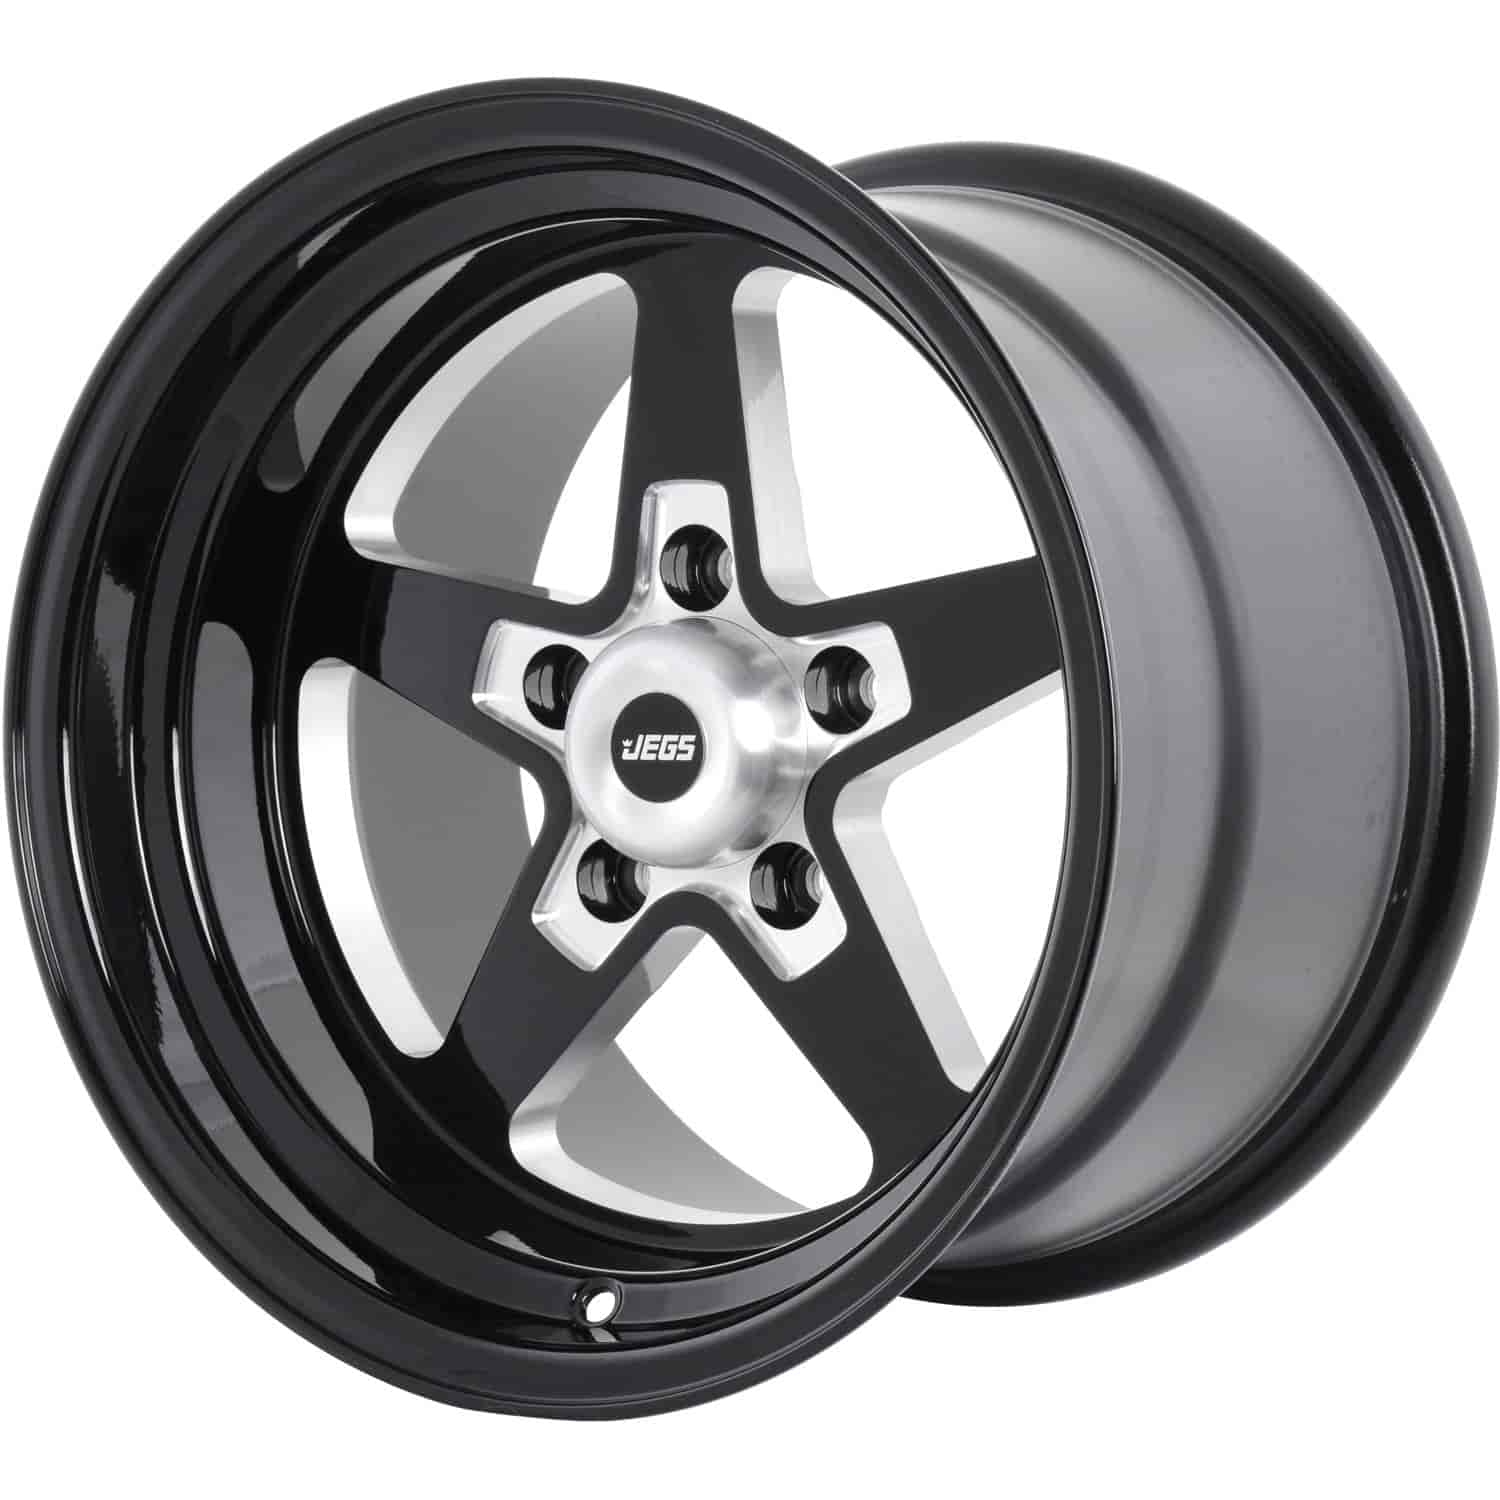 JEGS Performance Products SSR Star Wheel Diameter & Width